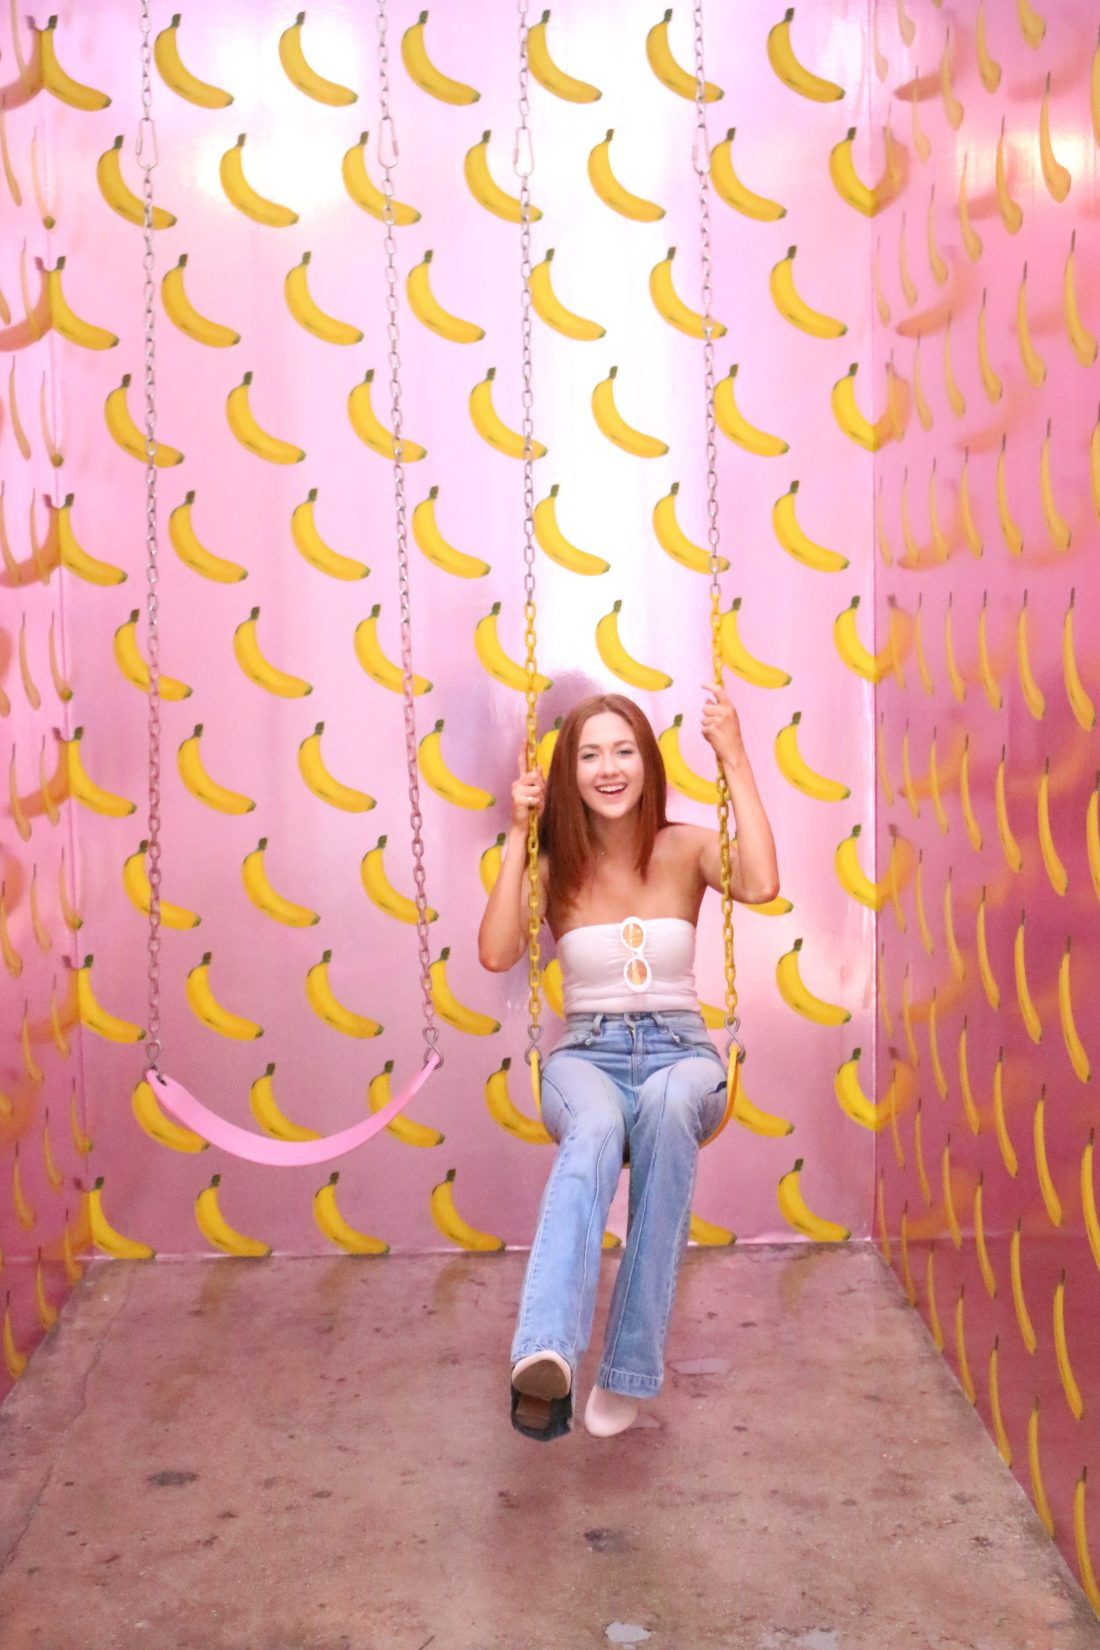 What Should I Do With My Soil: Museum Of Ice Cream · But What Should I Wear